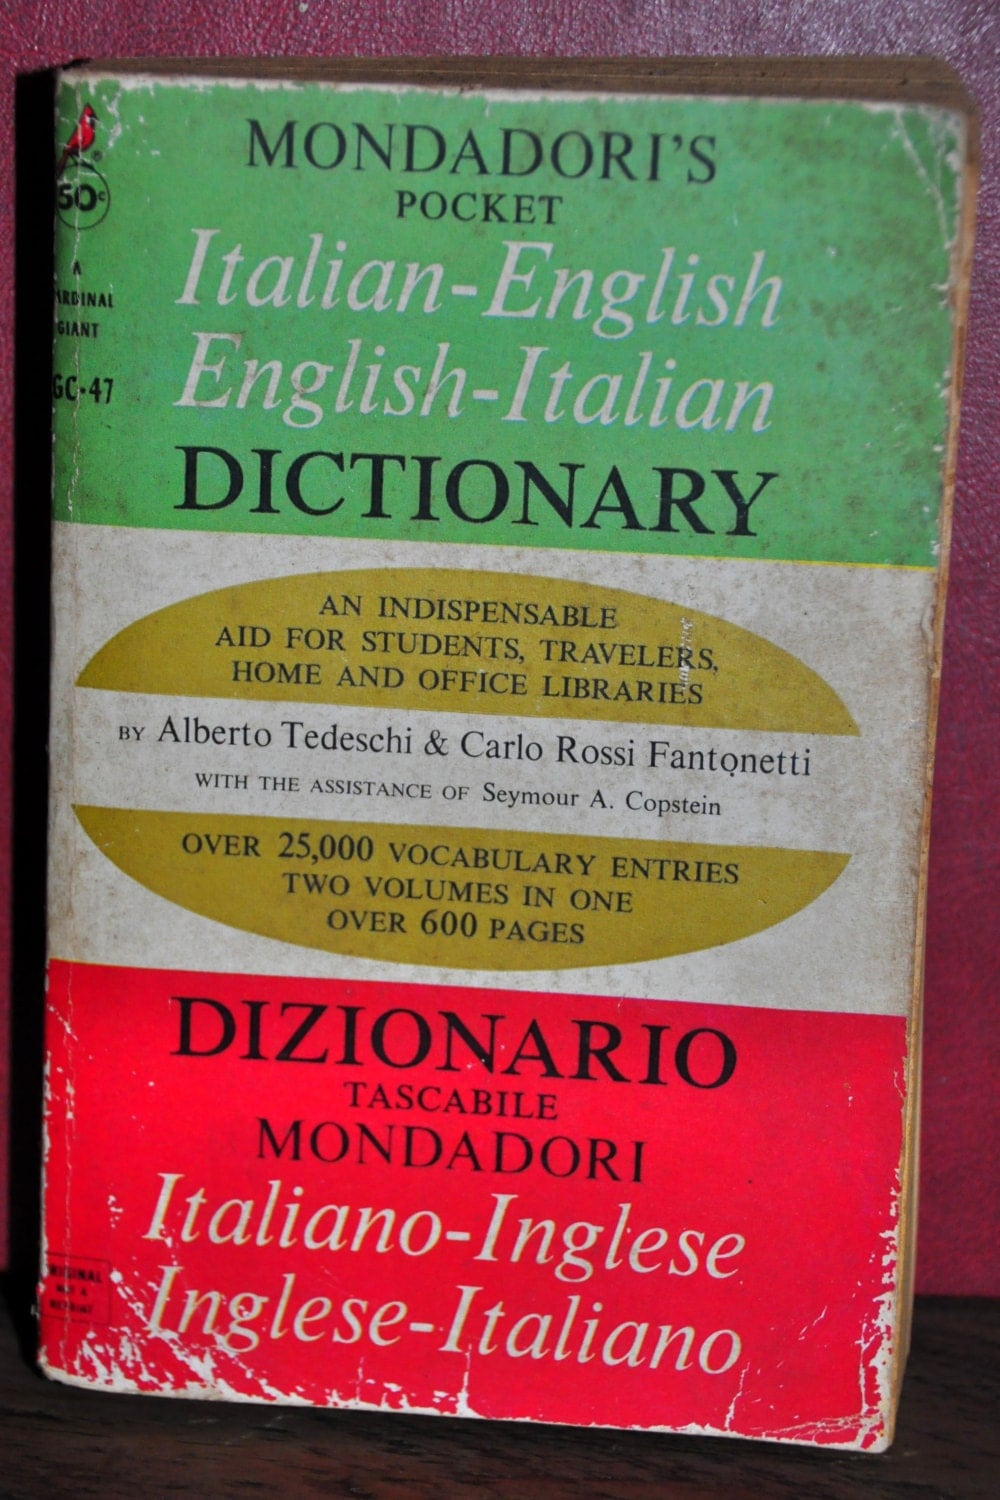 English In Italian: Italian English Dictionary. Mondadori's Pocket Book